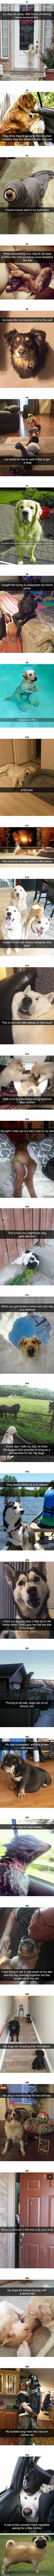 30 Hilarious Dog Snapchats That Are Impawsible Not To Laugh At #funnypics #funny #lol